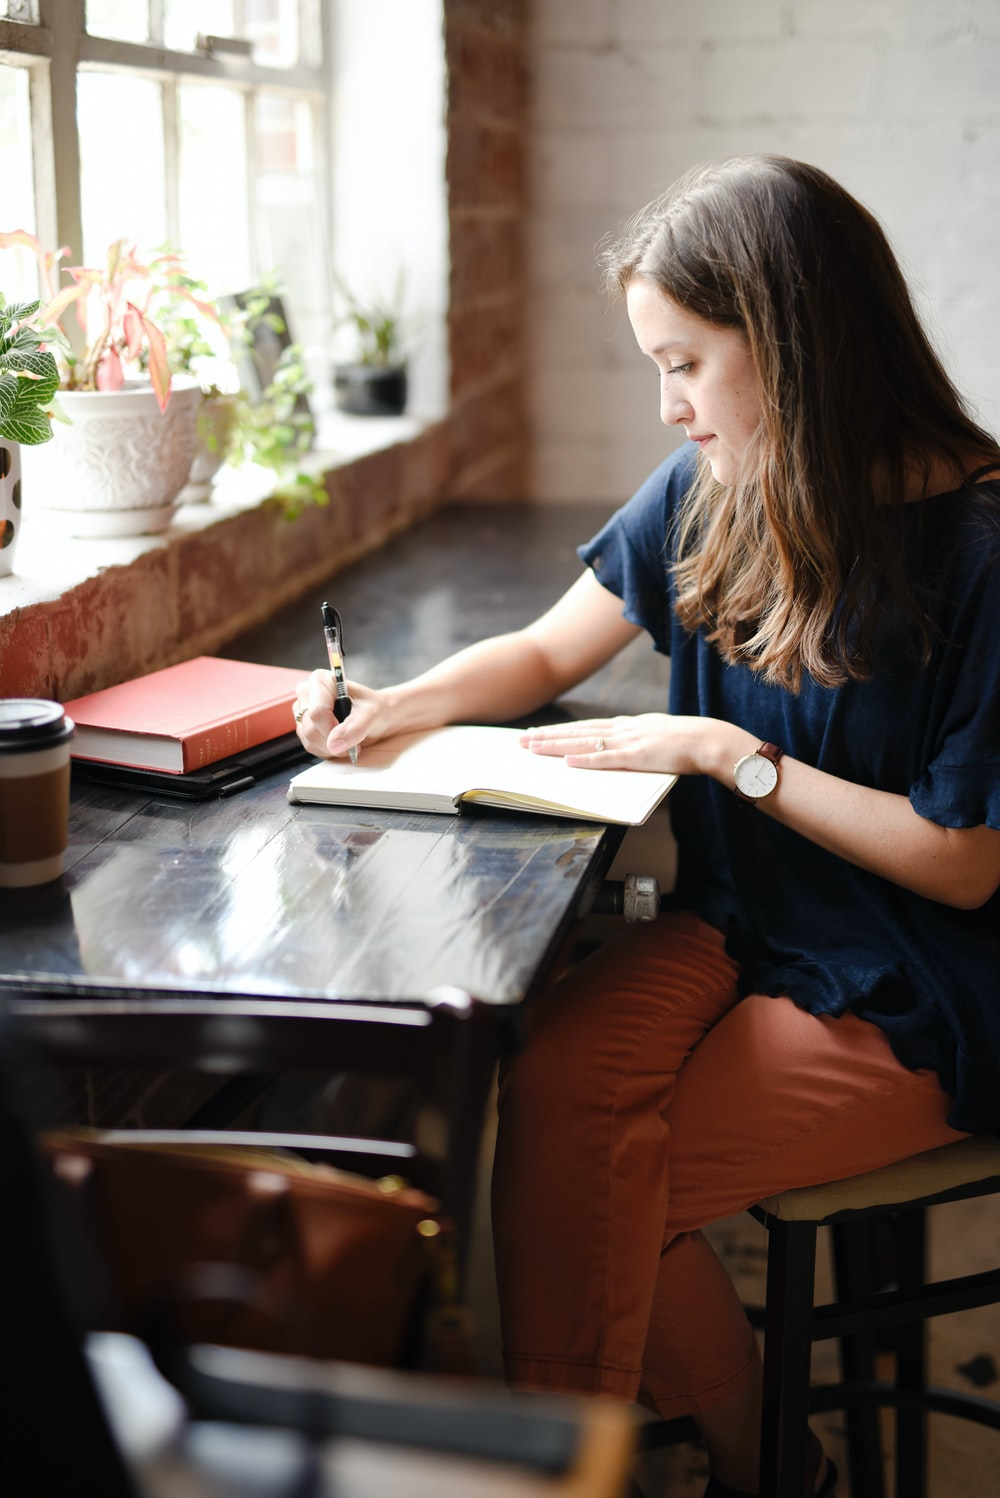 woman sitting in front of black table writing on white book near window